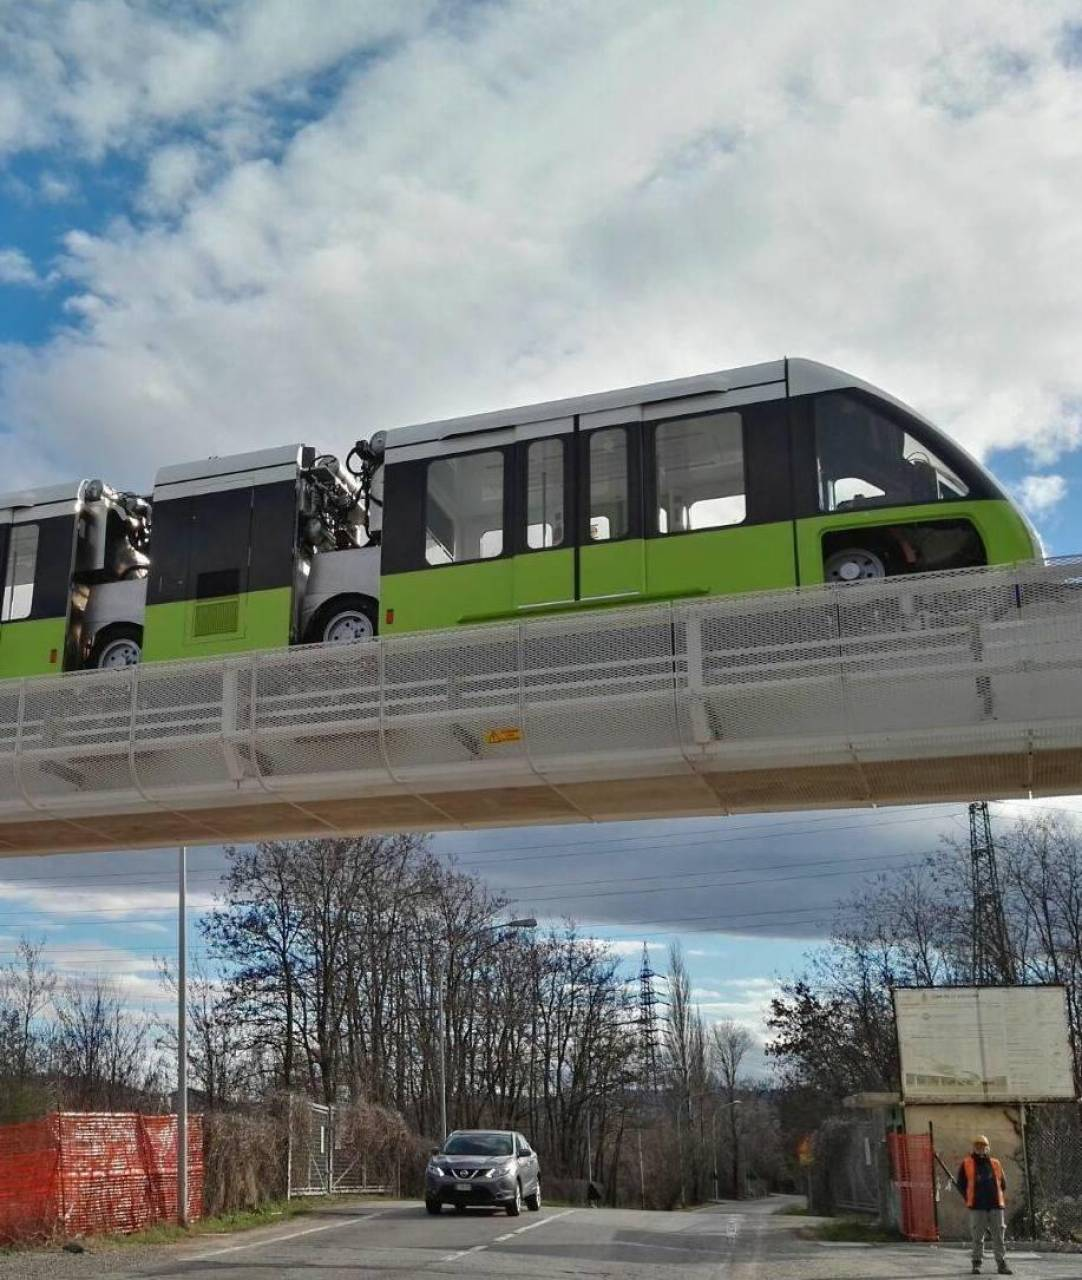 La navetta del People Mover in movimento durante i test Tra i problemi, il rumore delle ruote